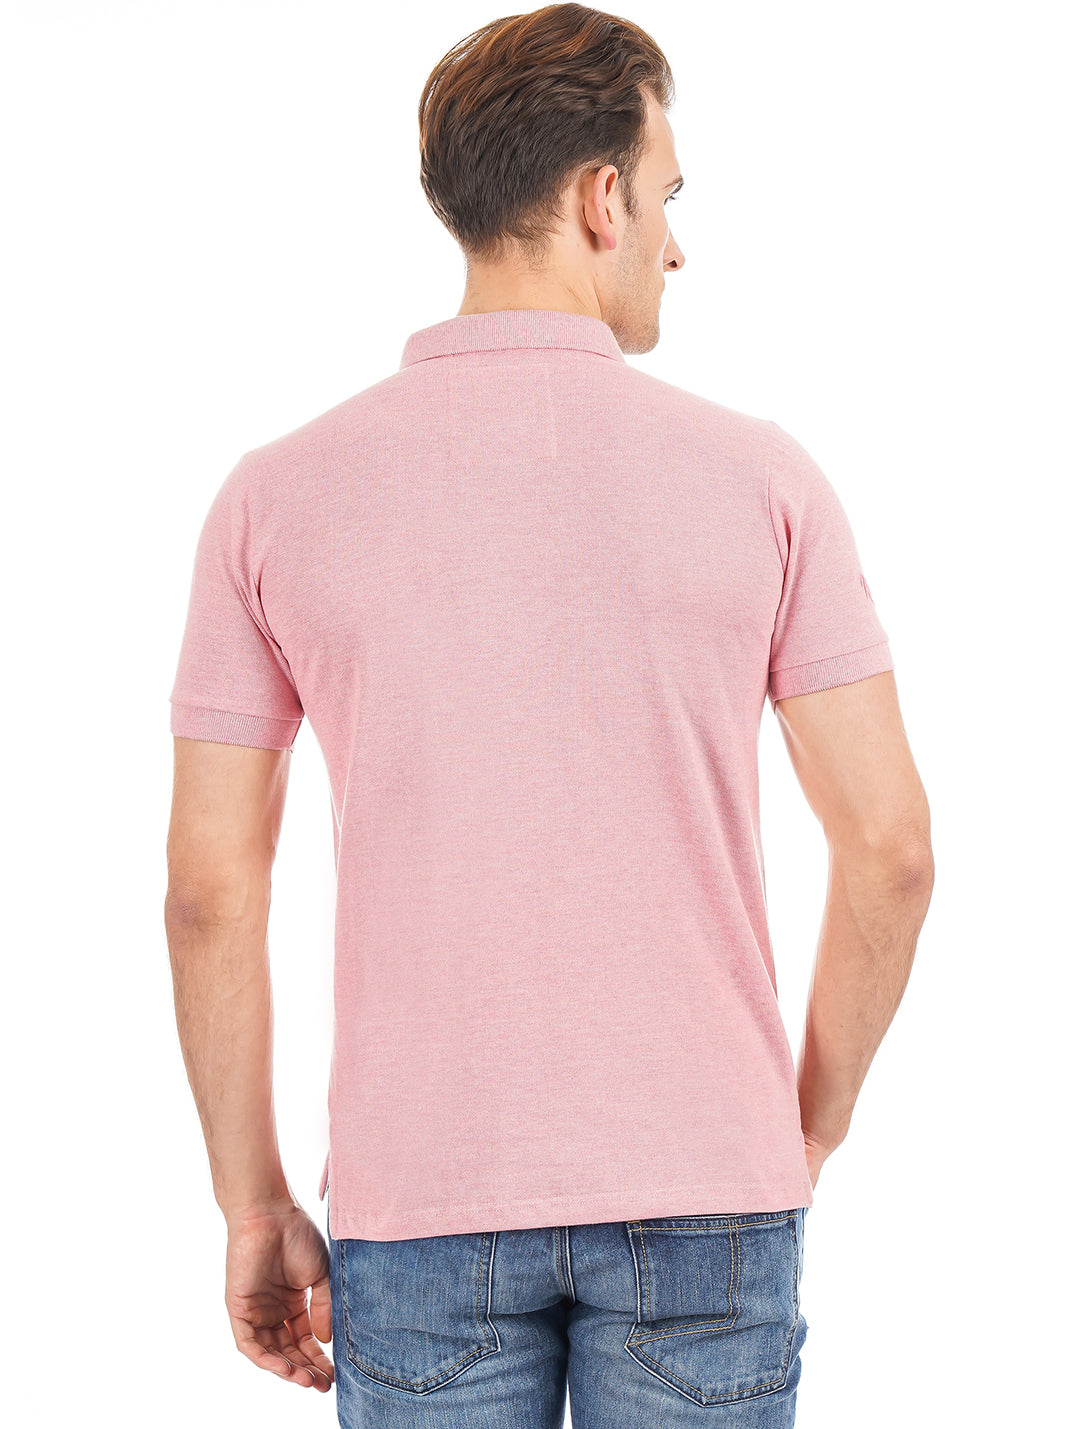 Rock Hooper Men's Solid Collar Cotton Pink Half Sleeve Polo T-Shirt